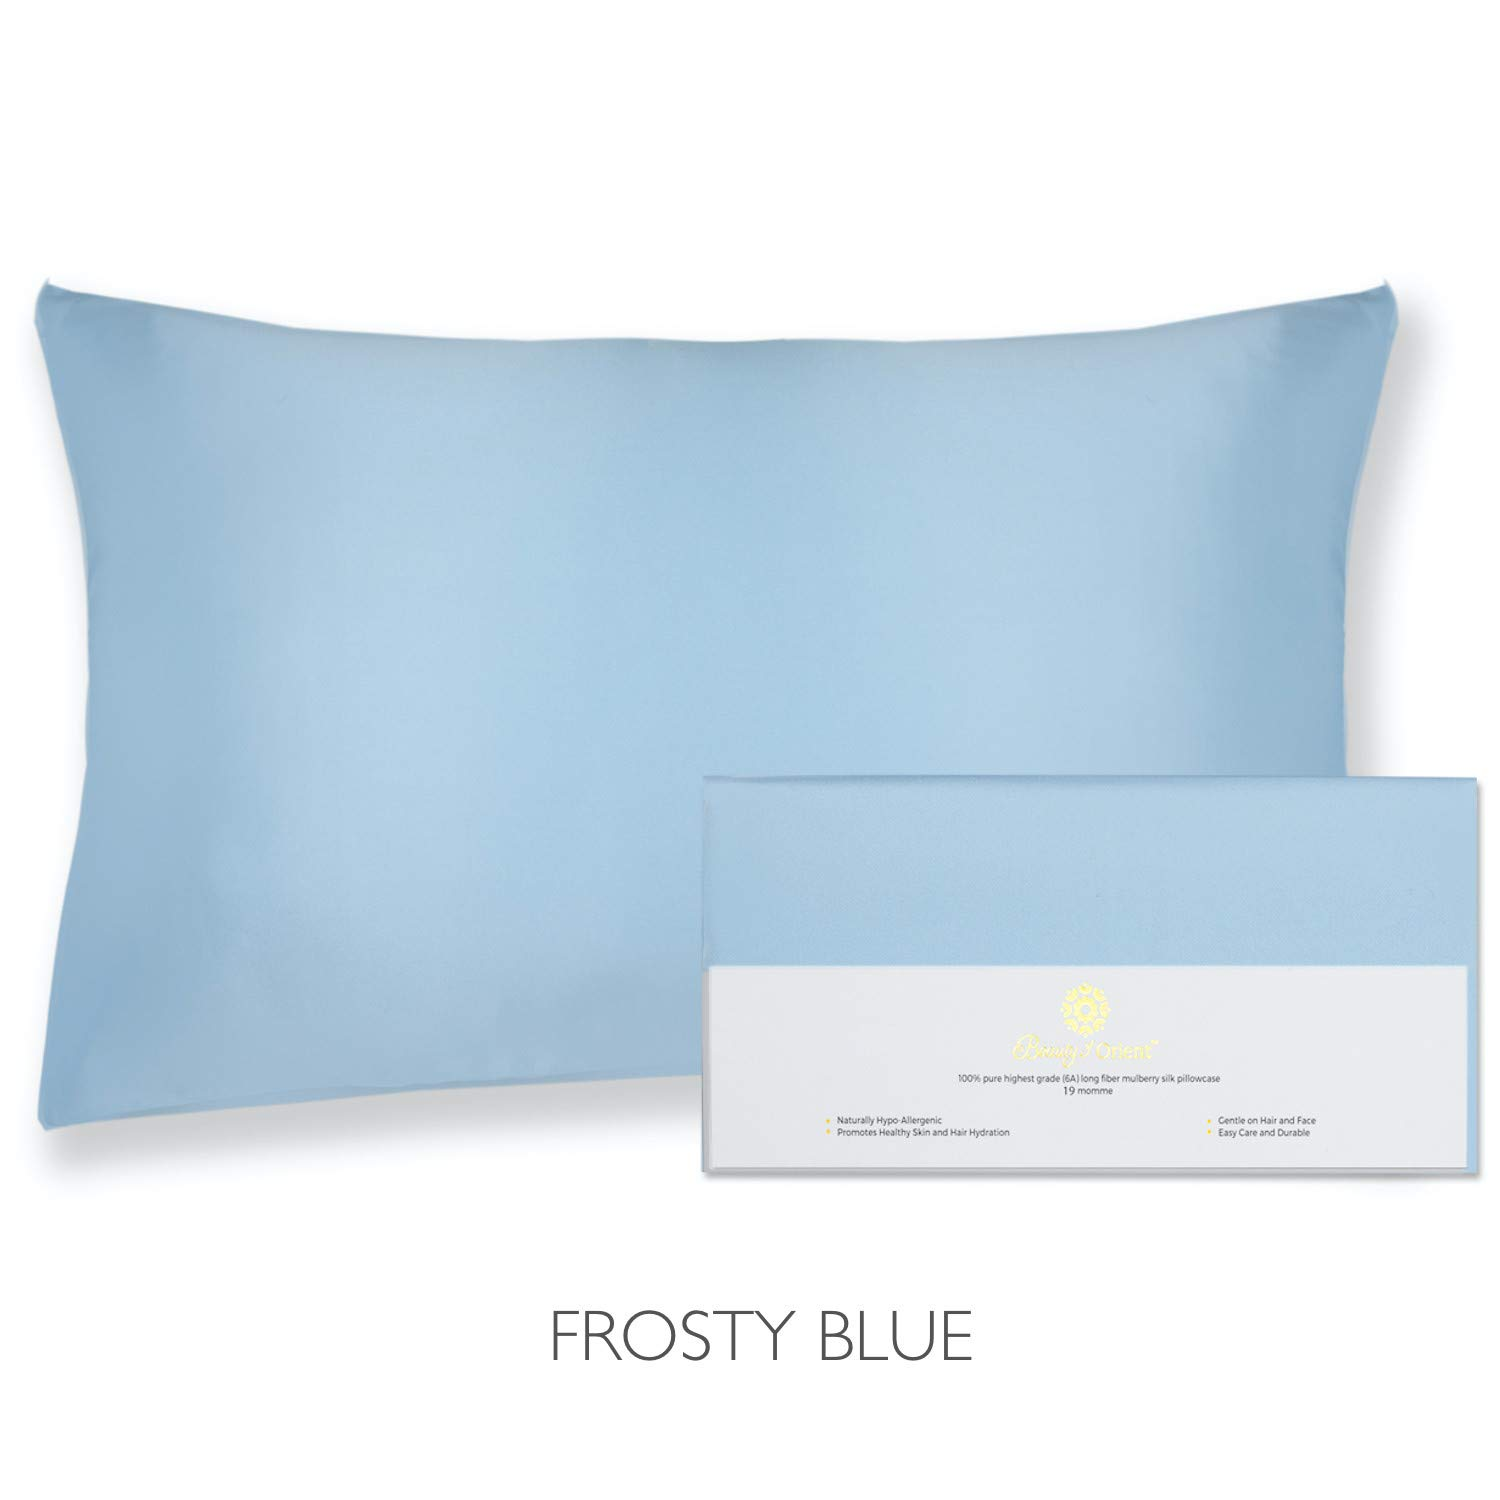 """Beauty of Orient - 100% Pure Mulberry Silk Pillowcase for Hair and Skin, 19 Momme Both Sides, Hidden Zipper, Natural Hypoallergenic Silk Pillow Case - Best Sleep (1pc Queen - 20"""" x 30"""", Frosty Blue)"""